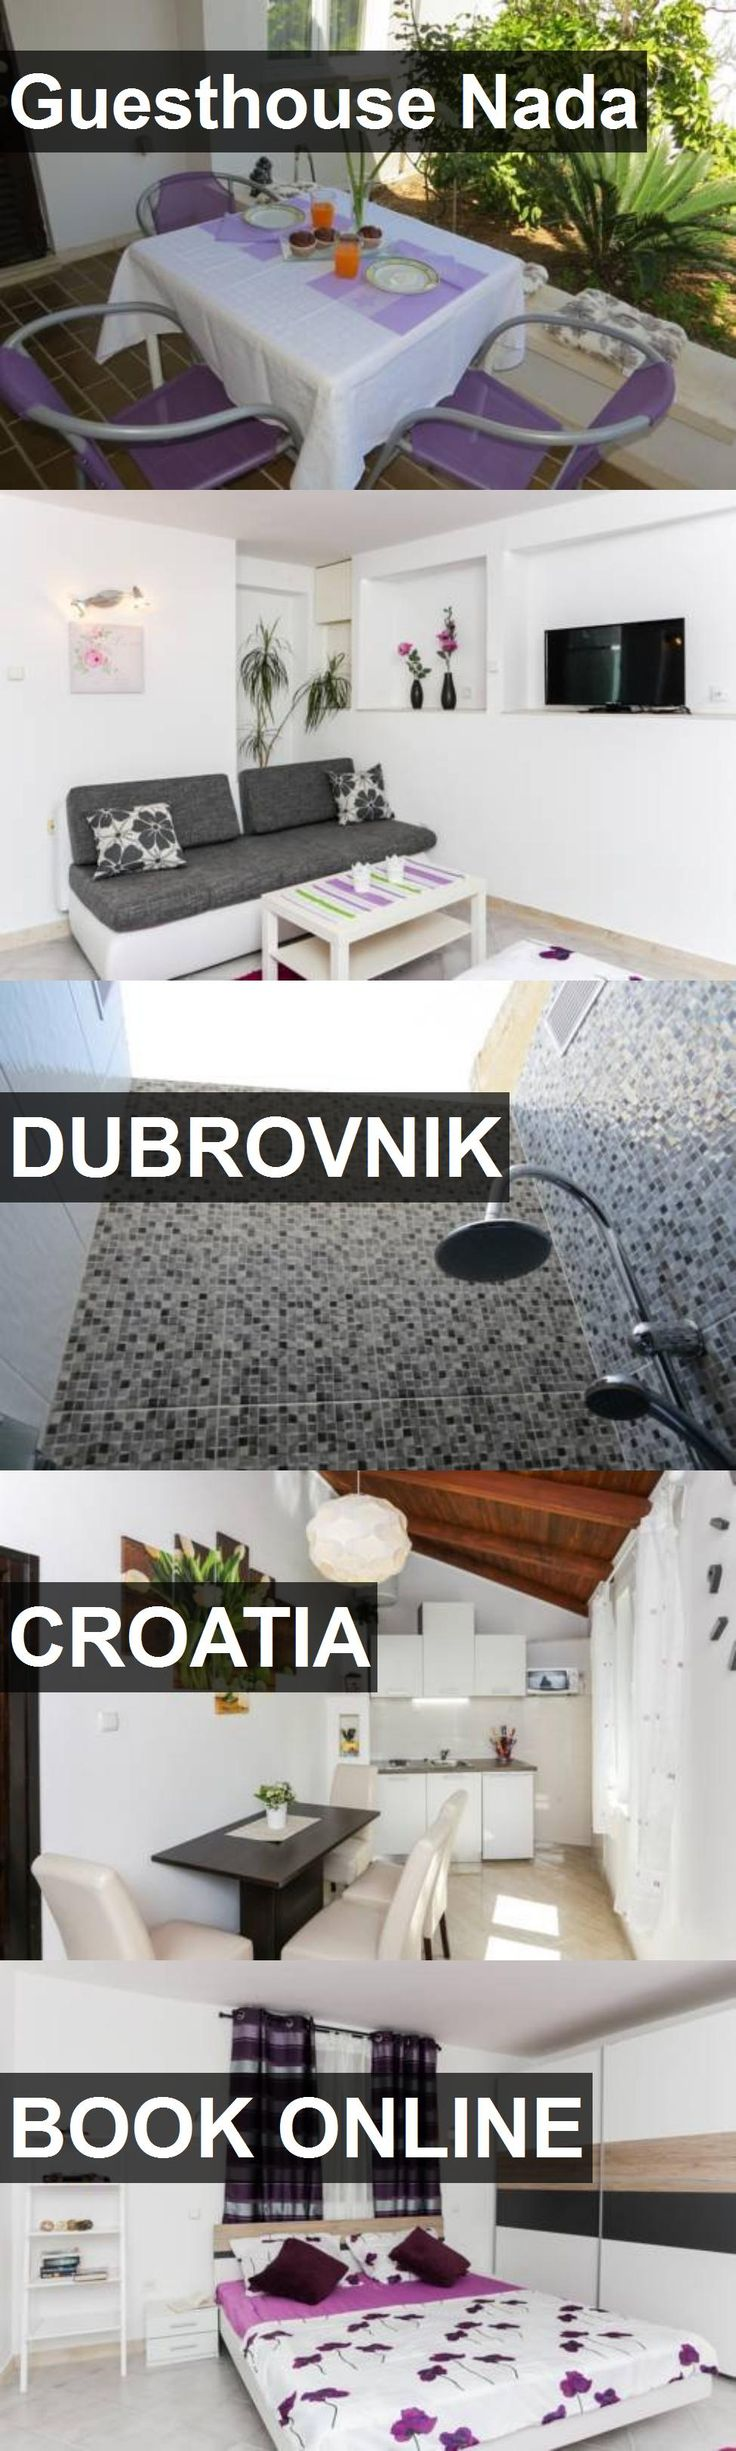 Hotel Guesthouse Nada in Dubrovnik, Croatia. For more information, photos, reviews and best prices please follow the link. #Croatia #Dubrovnik #travel #vacation #hotel